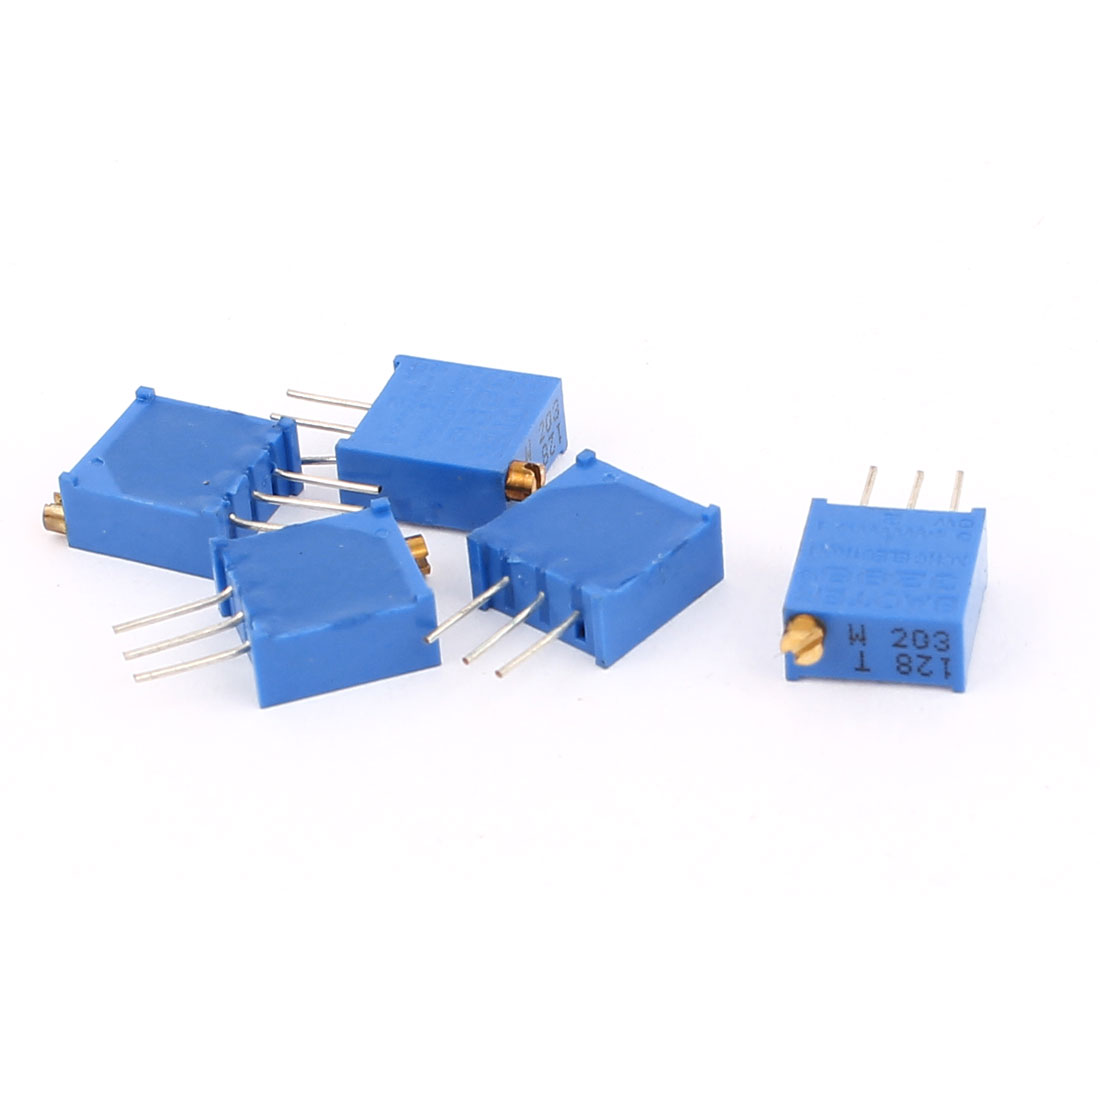 5 Pcs 3296W 20K ohm Variable Resistor Adjustable Resistance for Multiturn Potentiometer